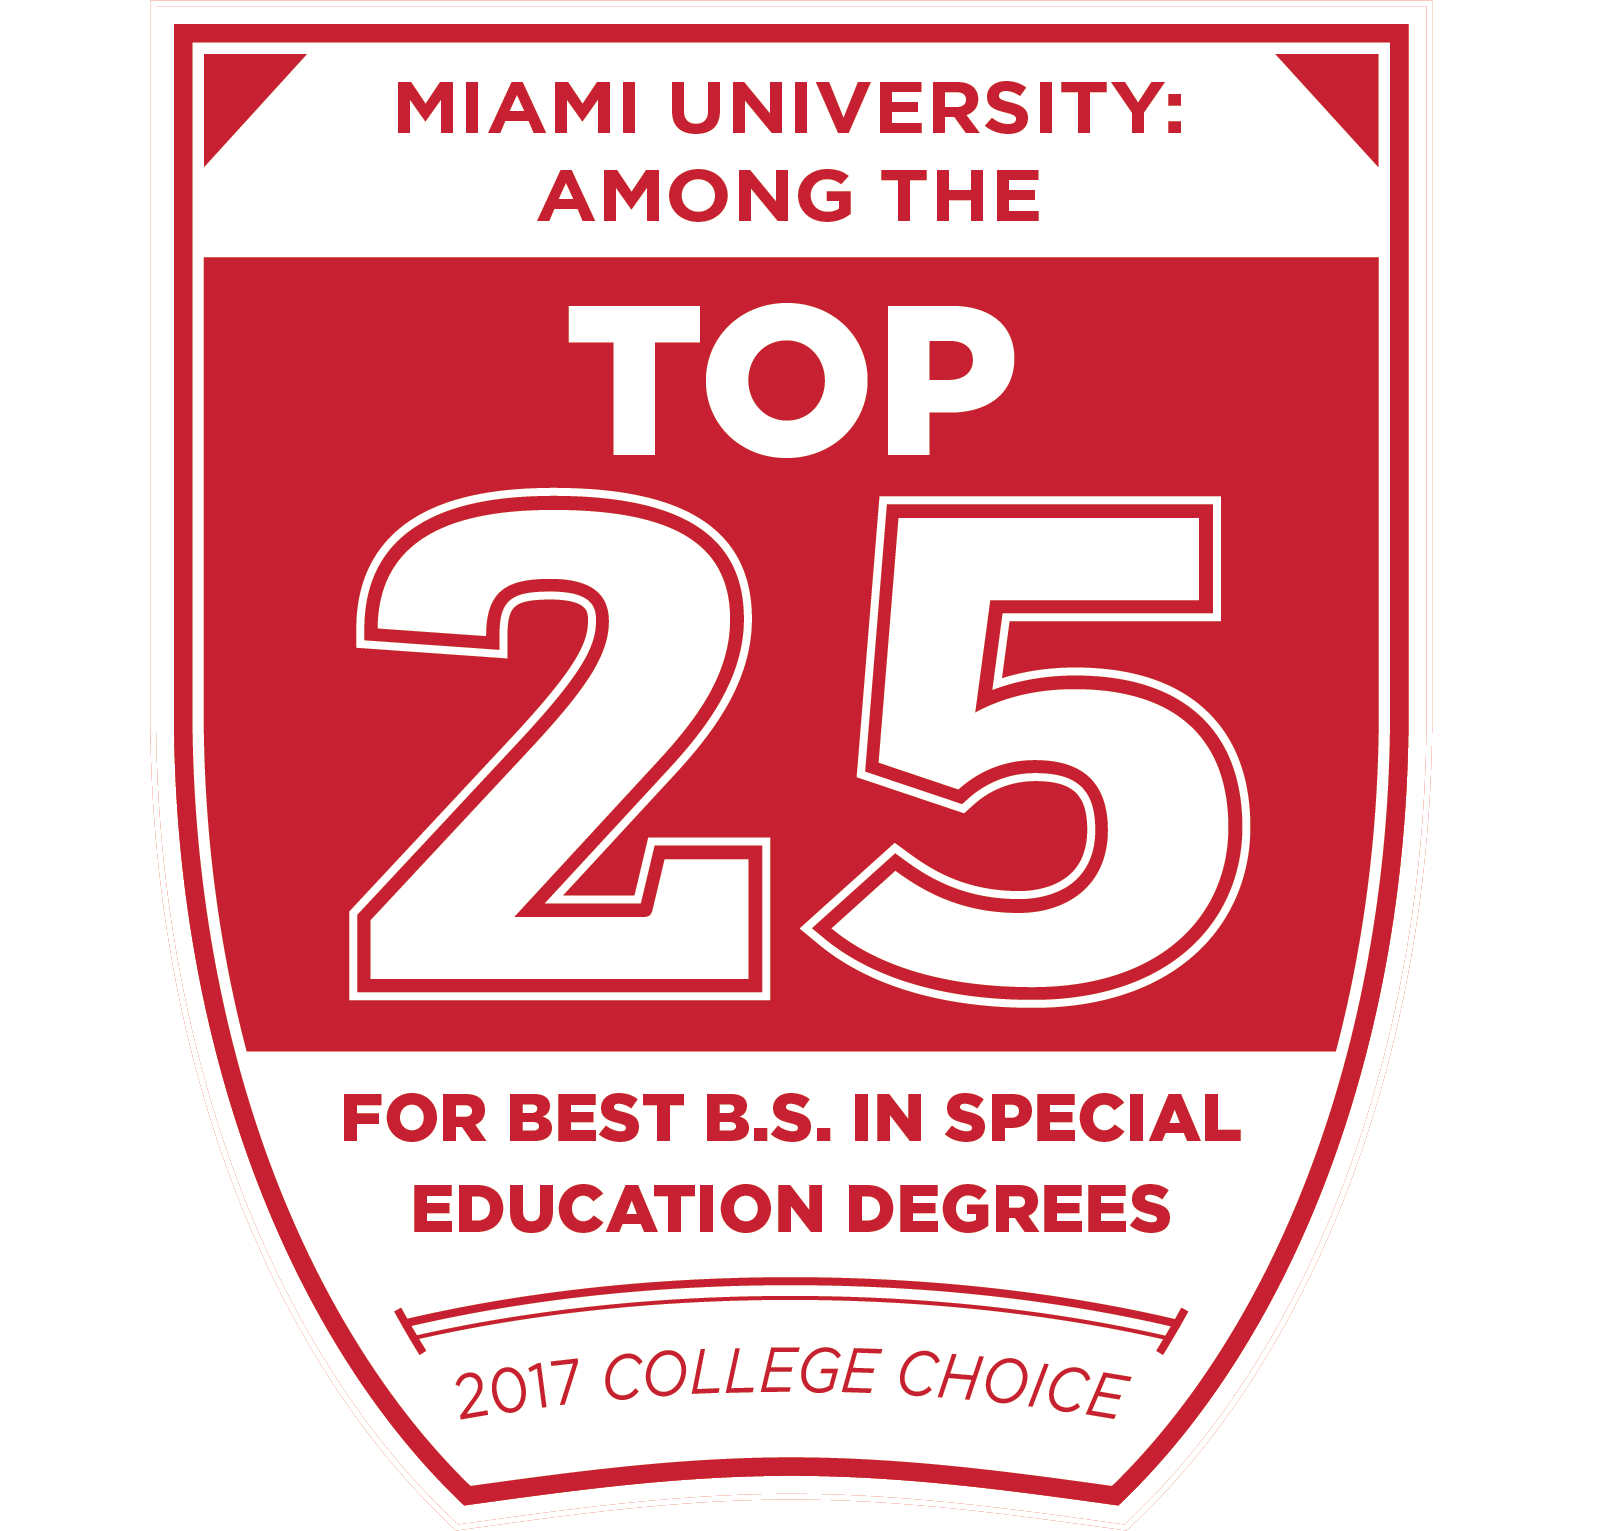 Miami University among the top 25 for best B.S.  in special education degrees by College Choice 2017